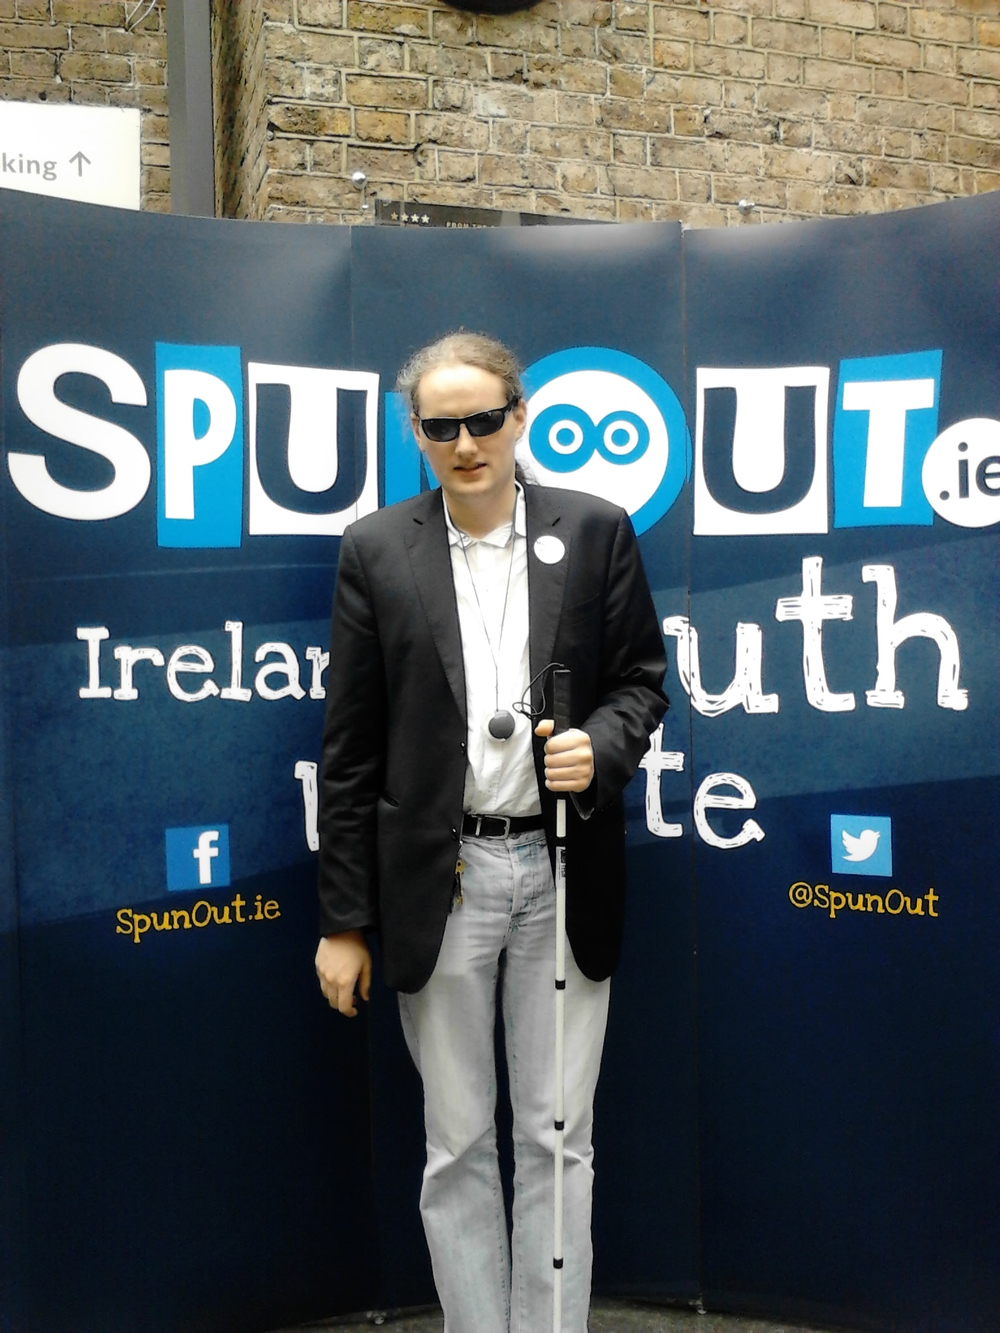 Supporting SpunOut